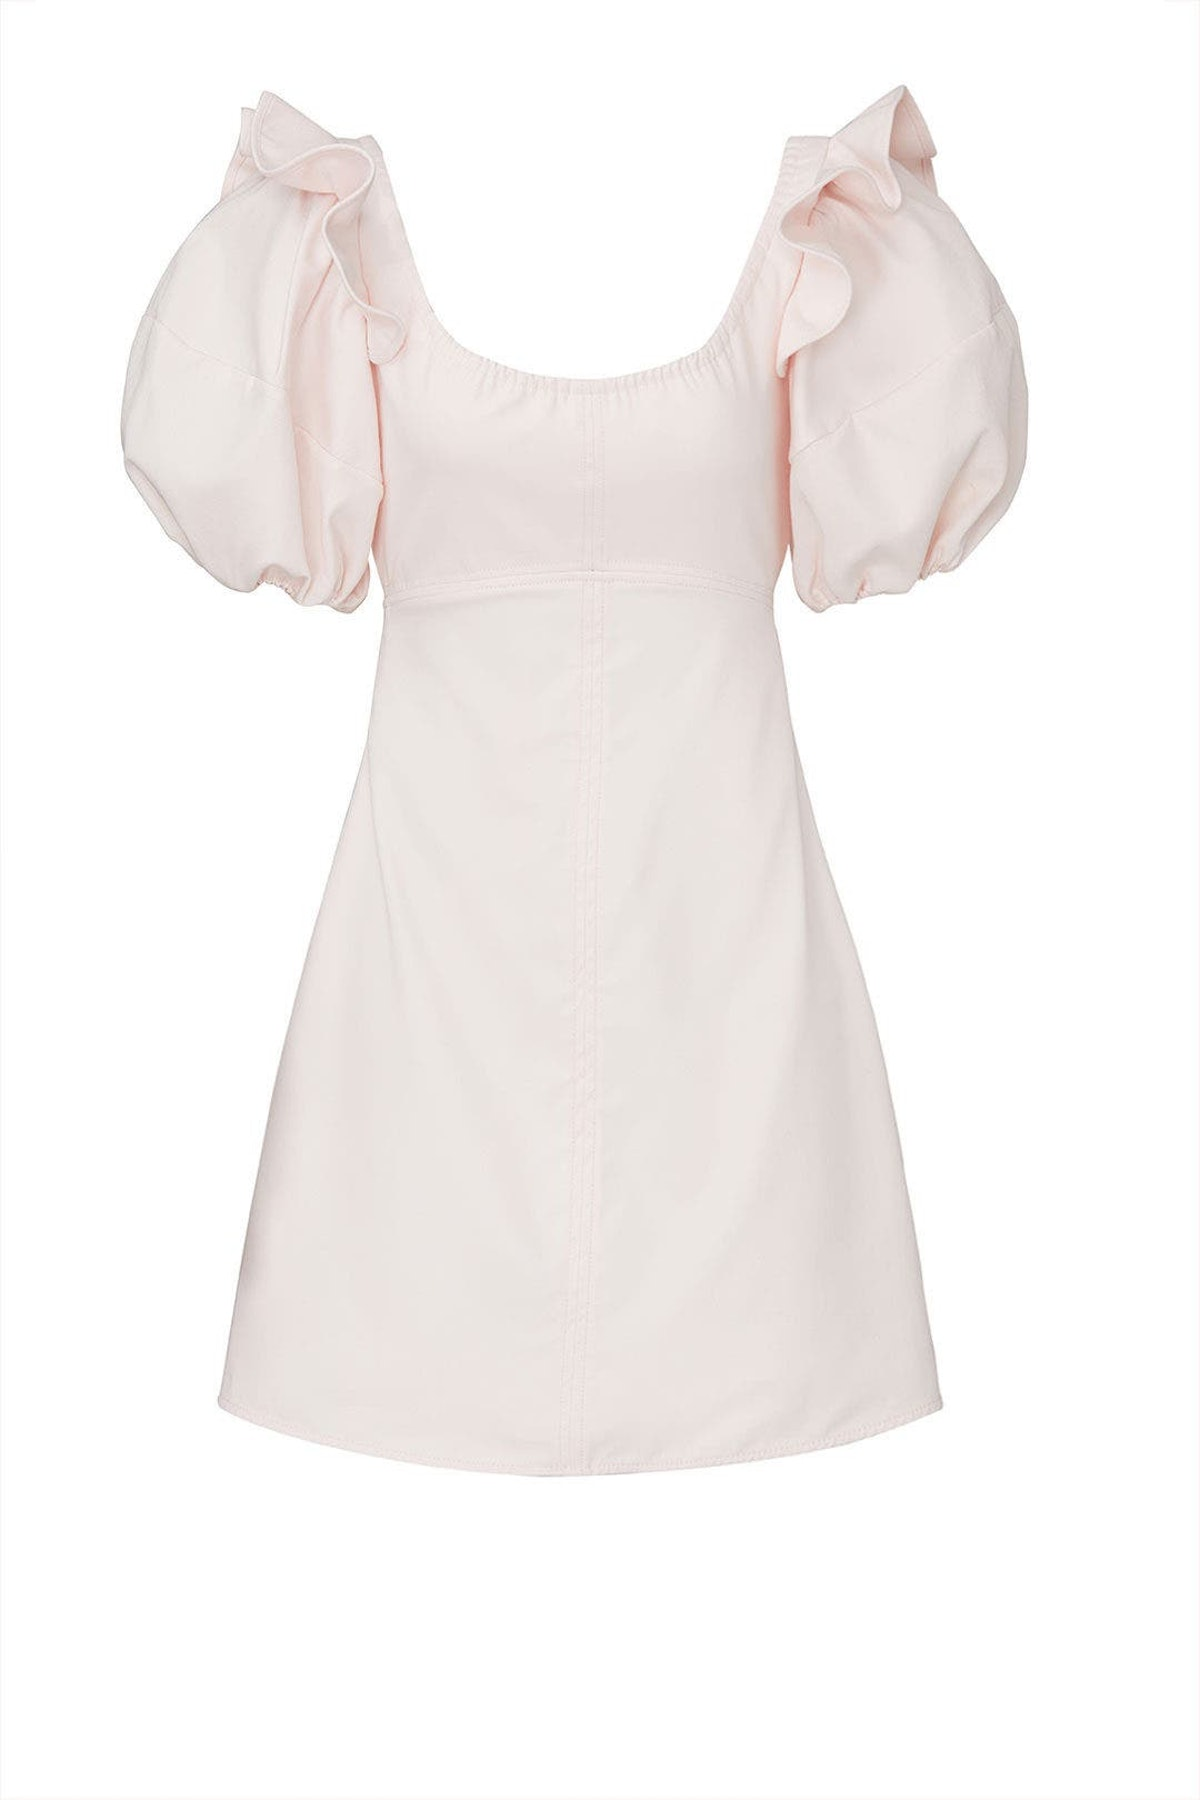 Creme puff sleeve Valeria mini dress from ELLERY, available to shop or rent via Rent The Runway.